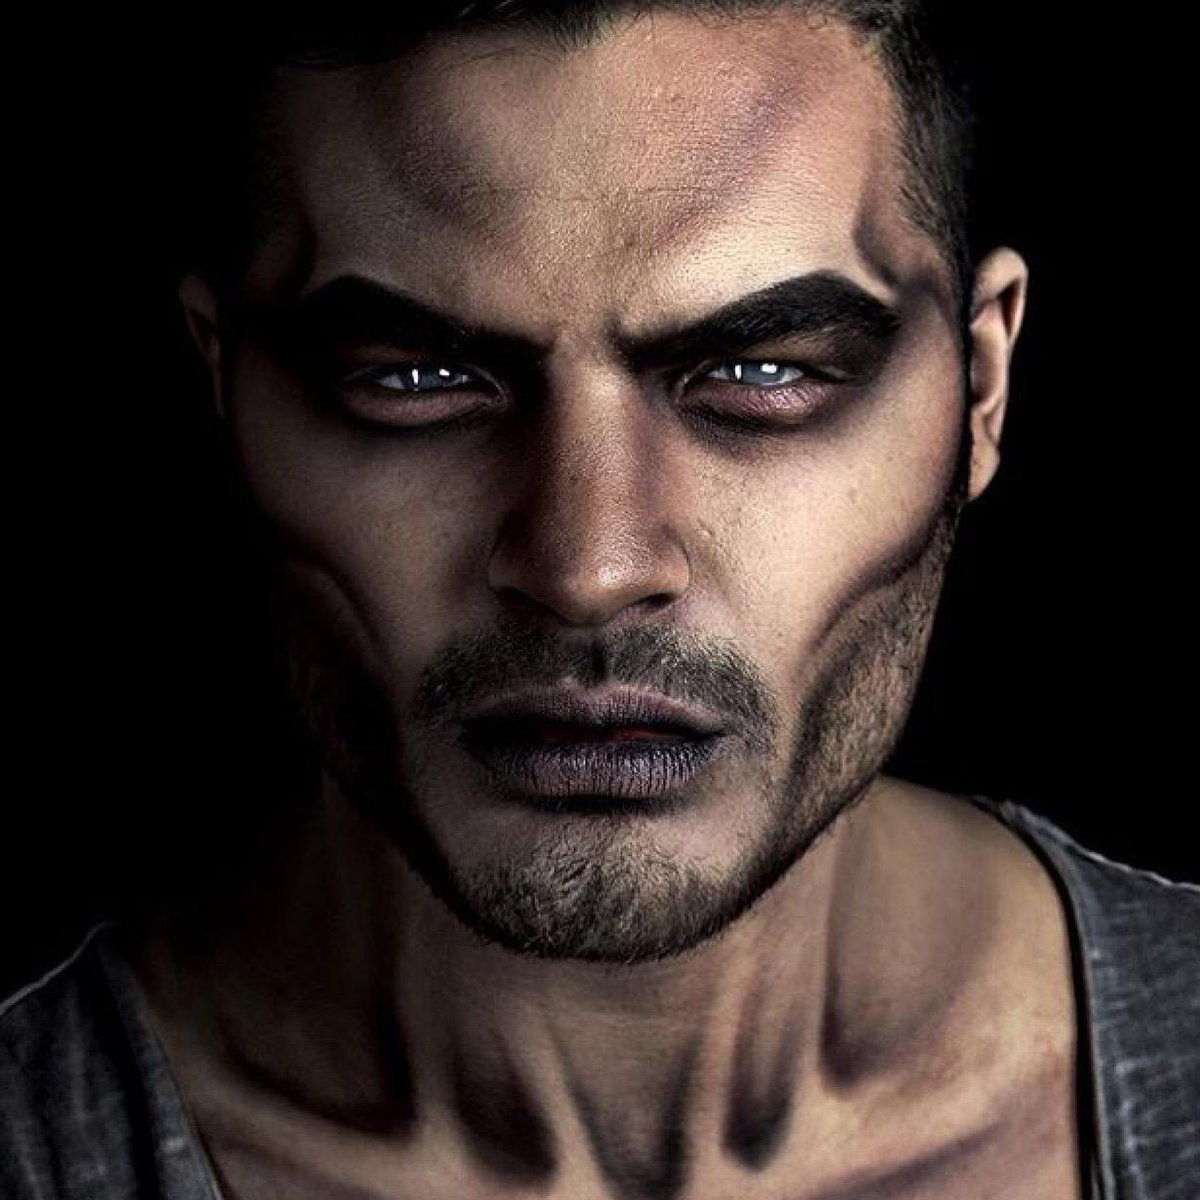 Oh Mr. @alexfaction we're in awe!!!! The shading is... Well there are no words